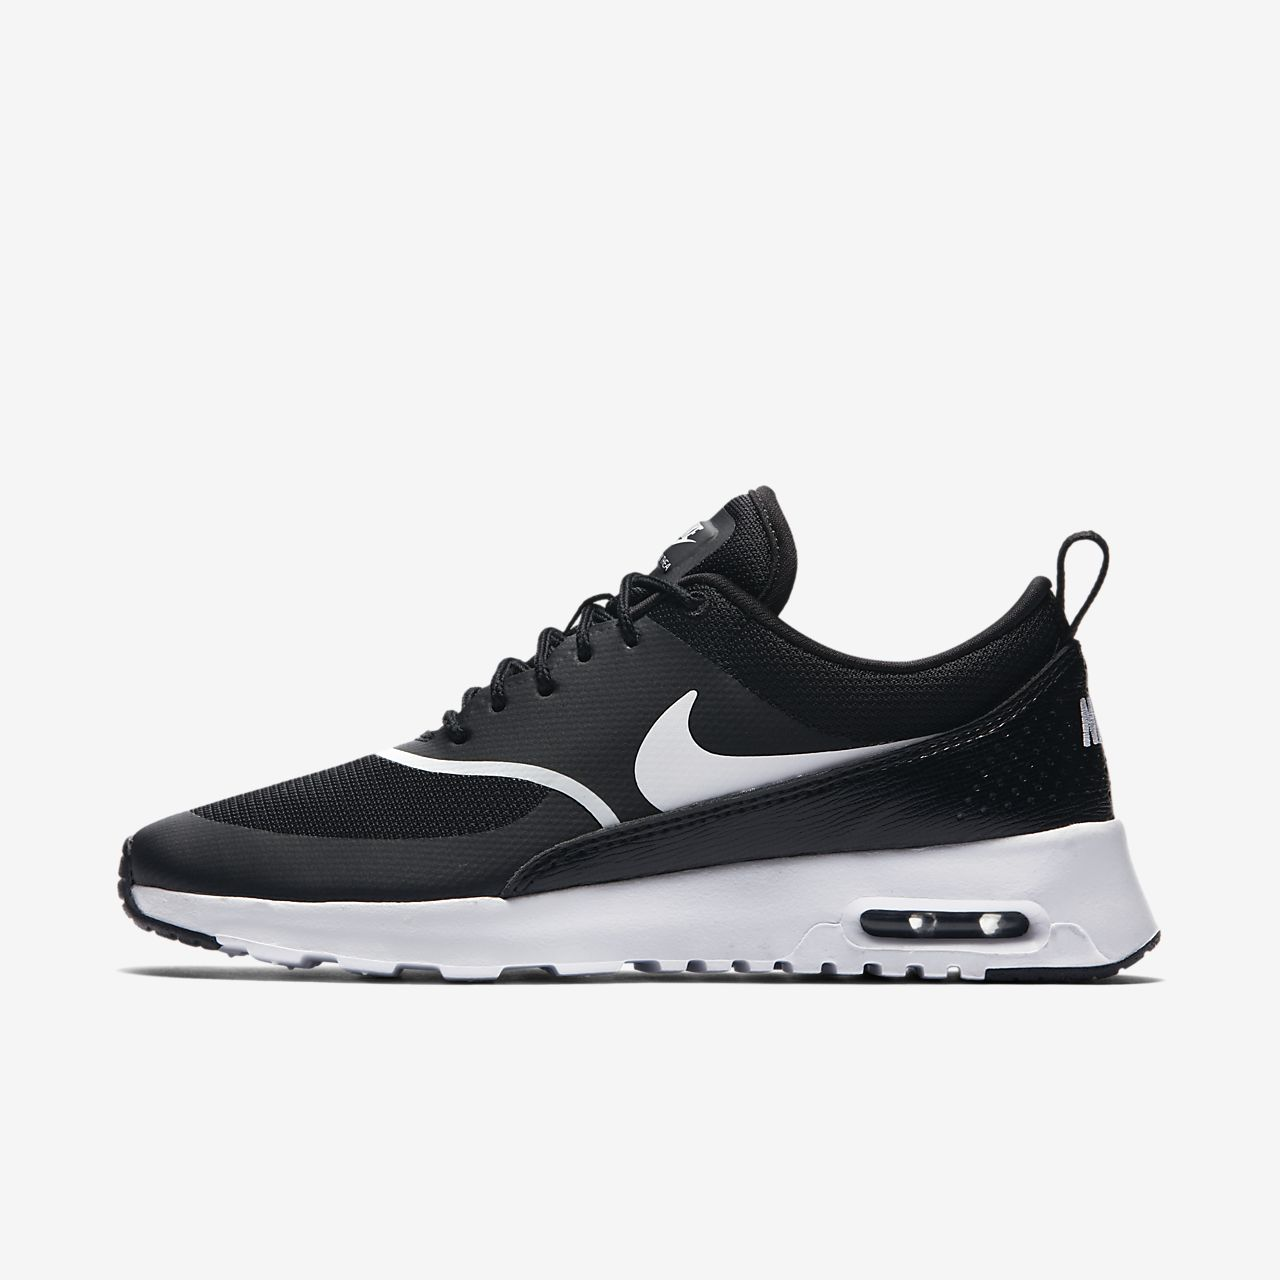 Air Max 1 - Chaussures - Low-dessus Et Chaussures De Sport Nike